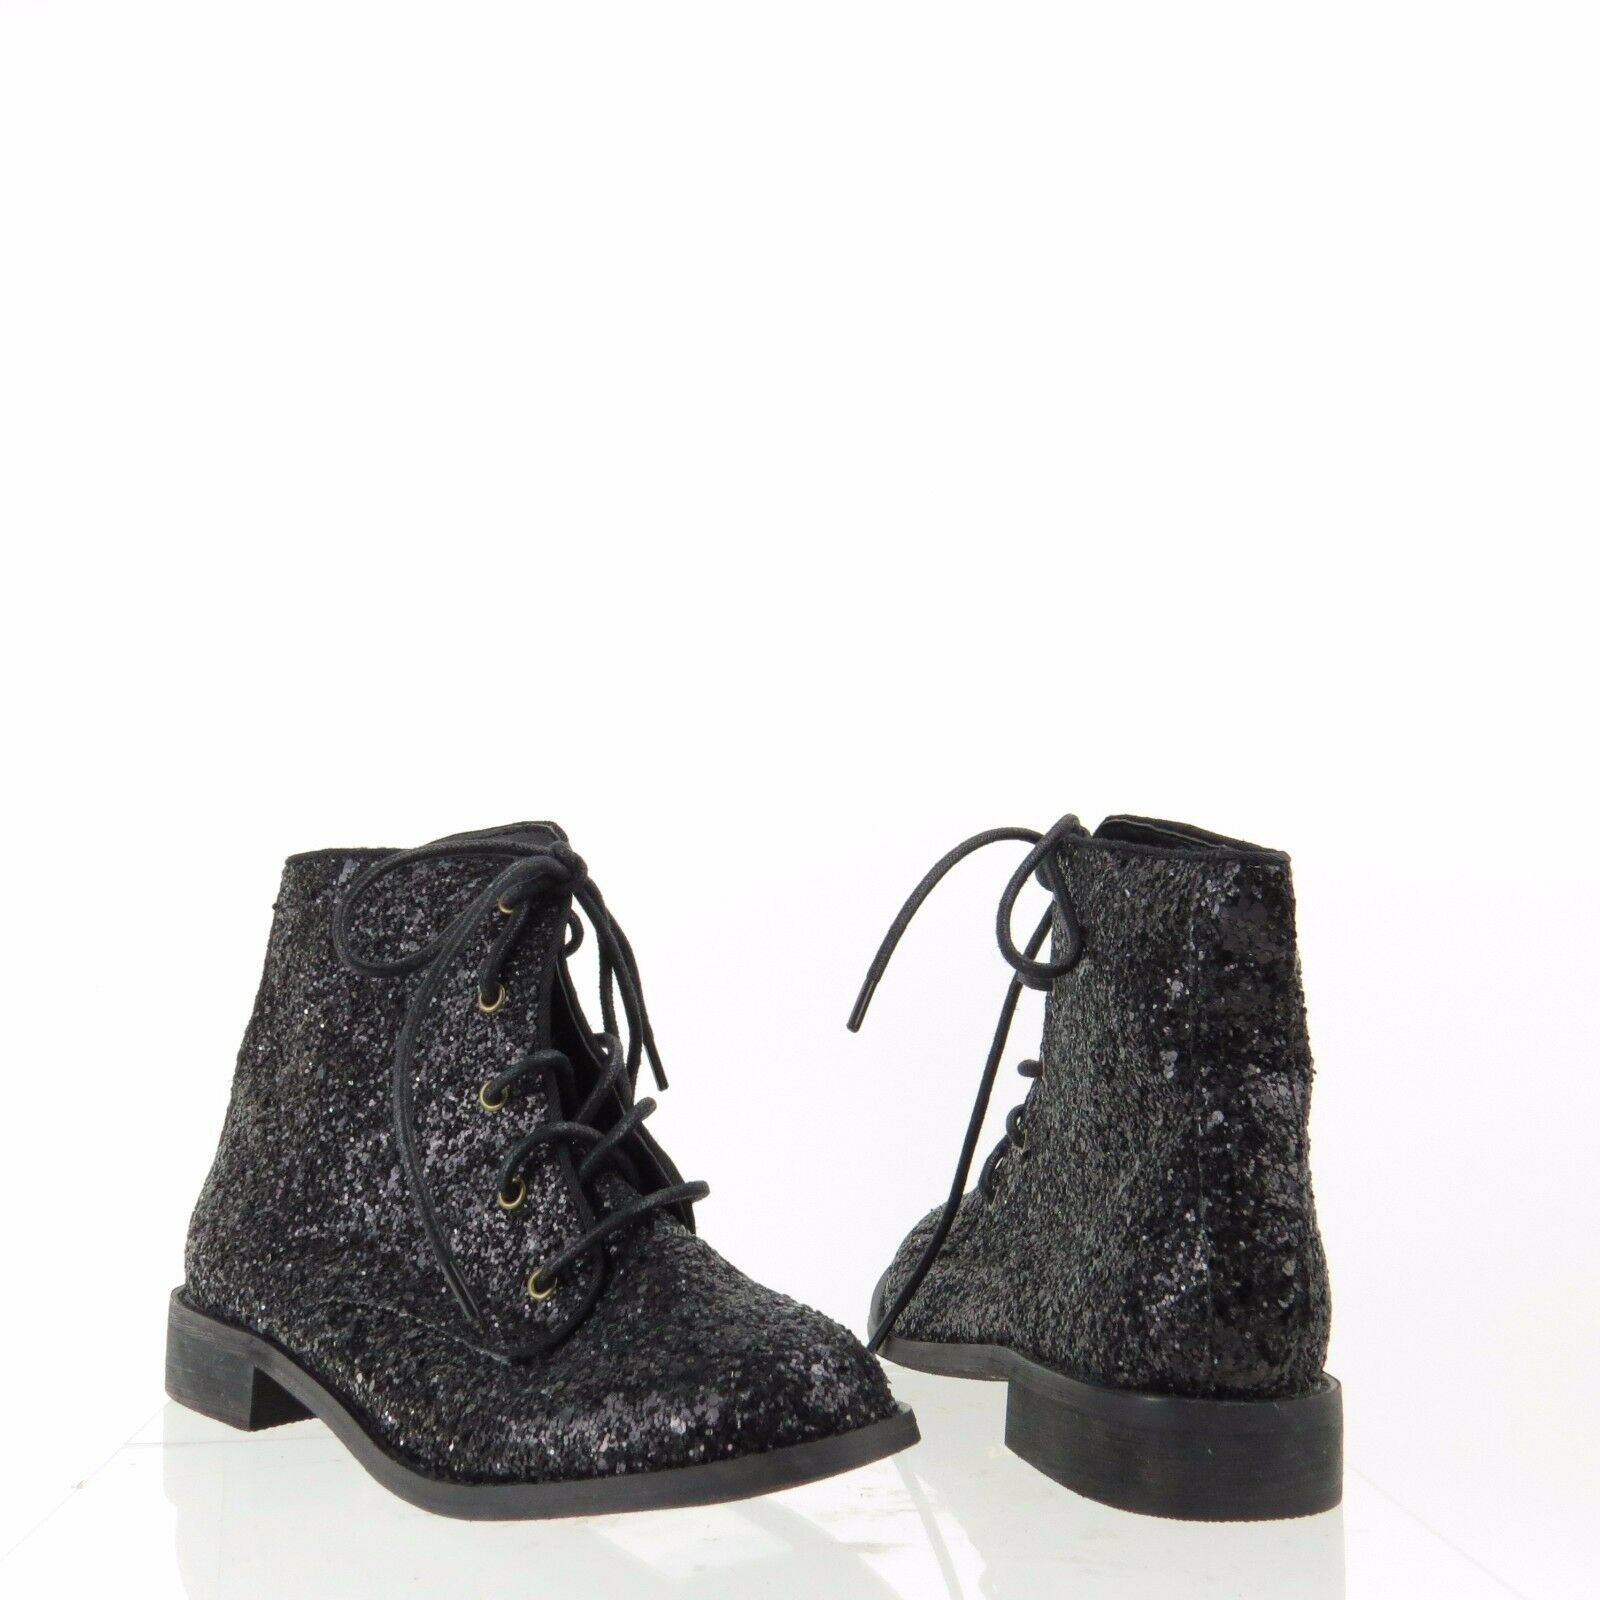 Women's Shellys London Kmenta Shoes Black Glitter Ankle Boots Size 5 M NEW!